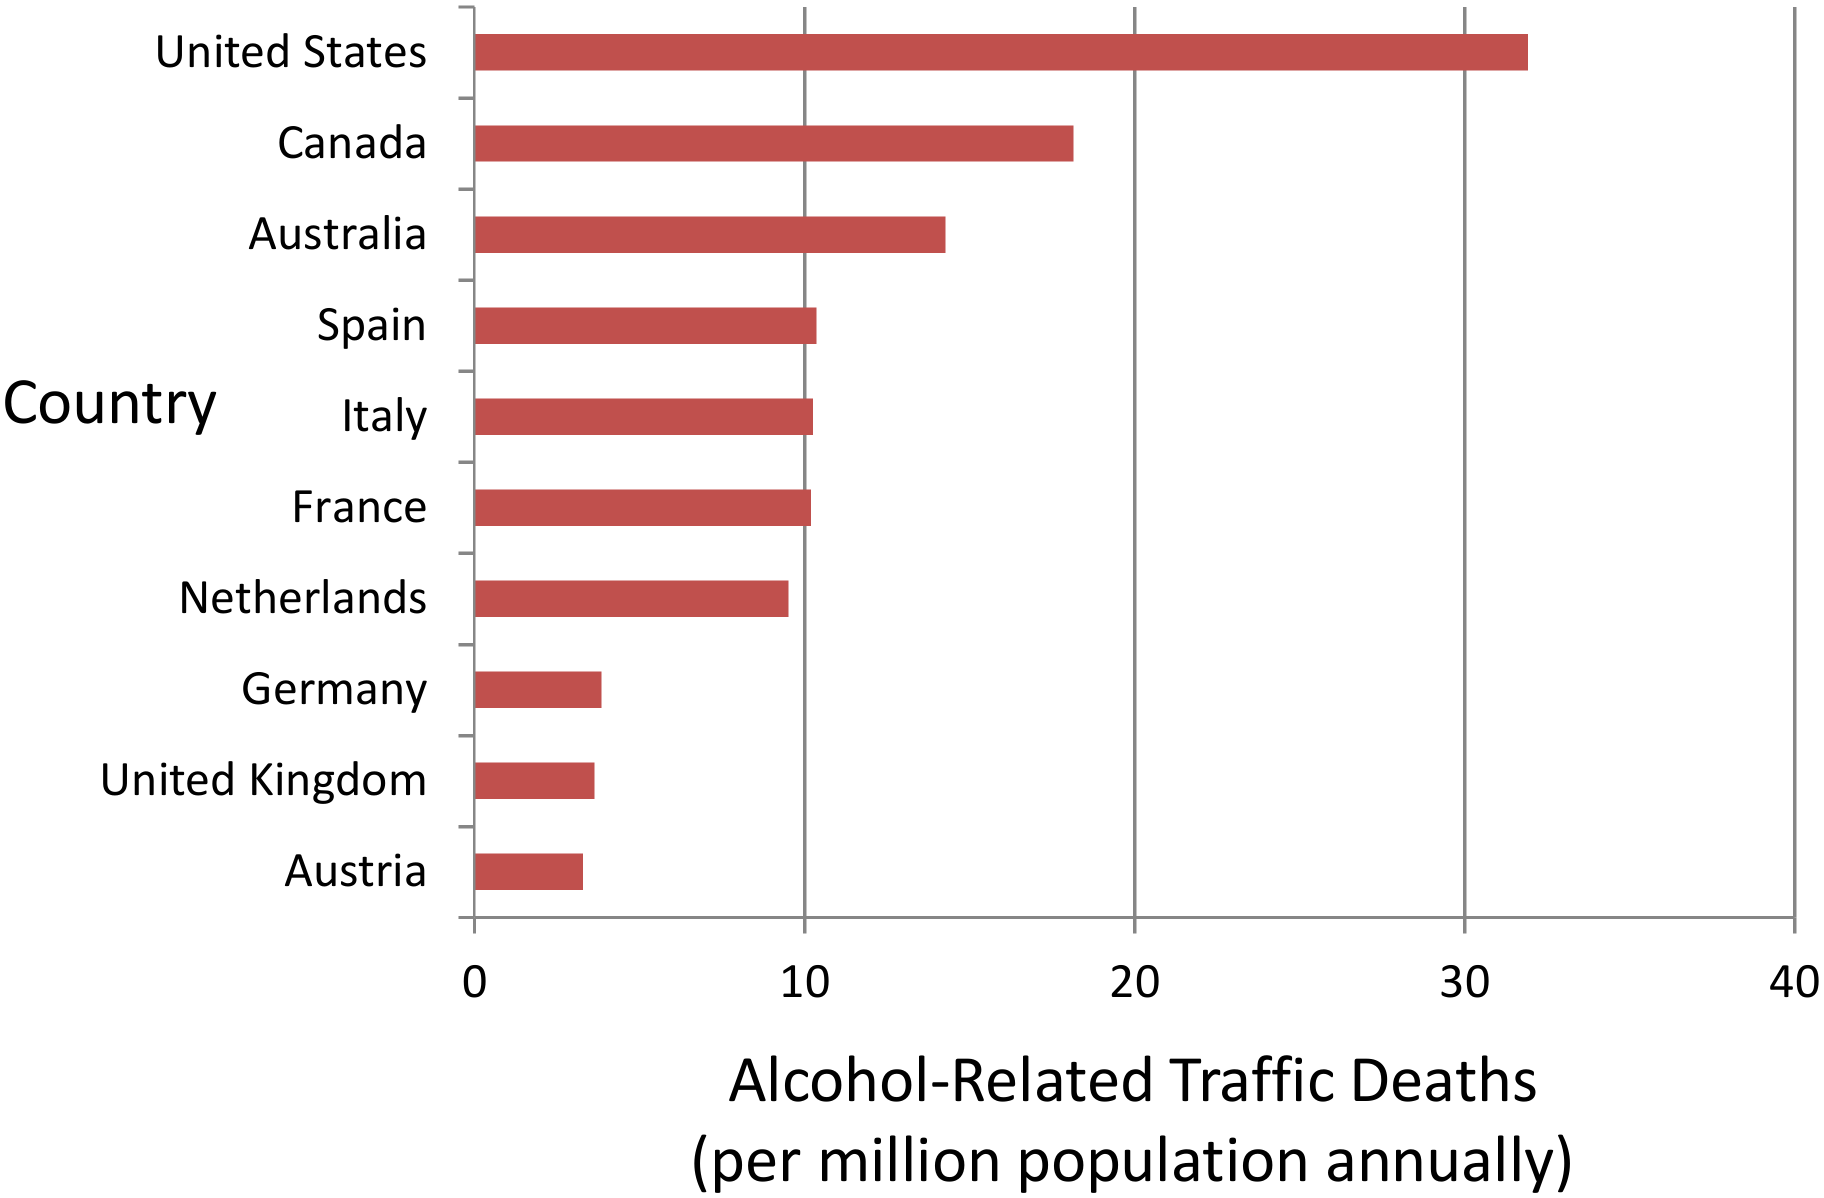 Alcohol-related traffic fatalities in the US and other countries.